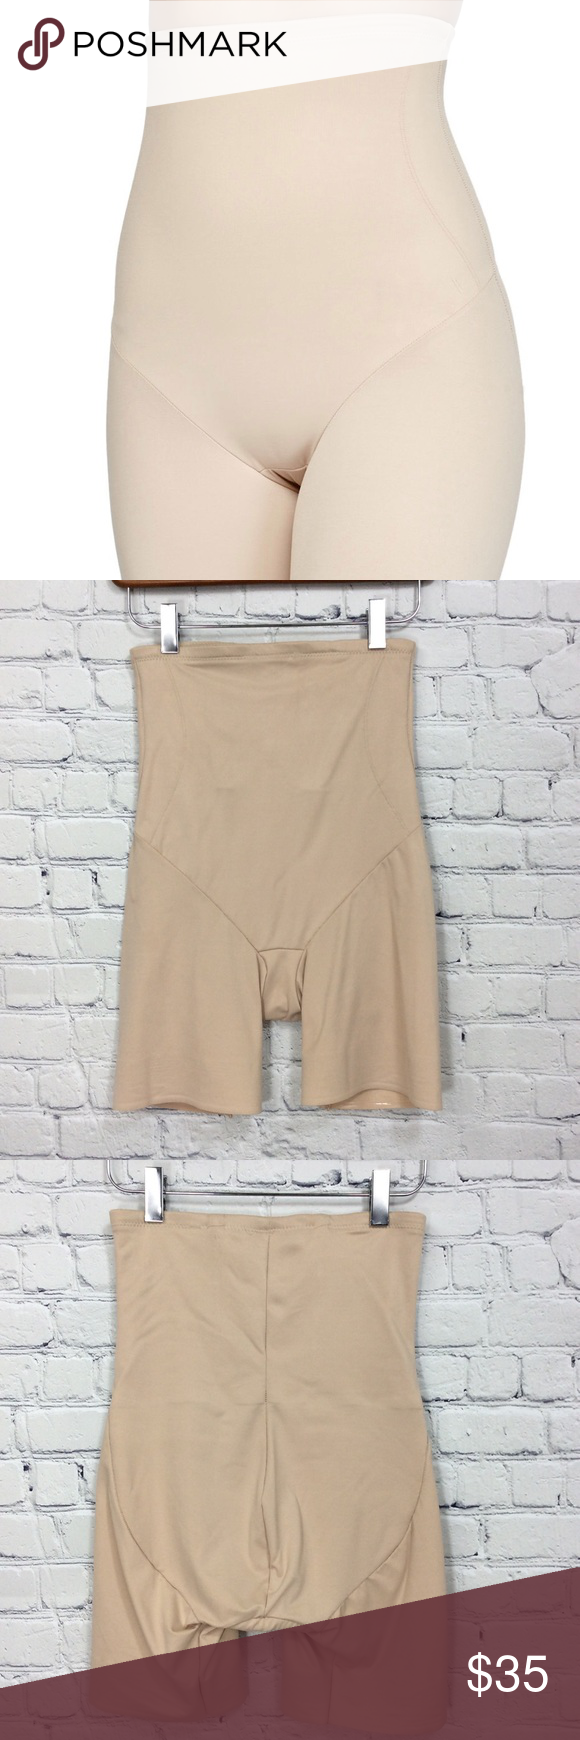 63a5d56726d57 TC Shapewear Back Magic High-Waist Thigh Slimmer This is a new but  laundered so without tags. Excellent condition. Approximate measurements  can be seen on ...